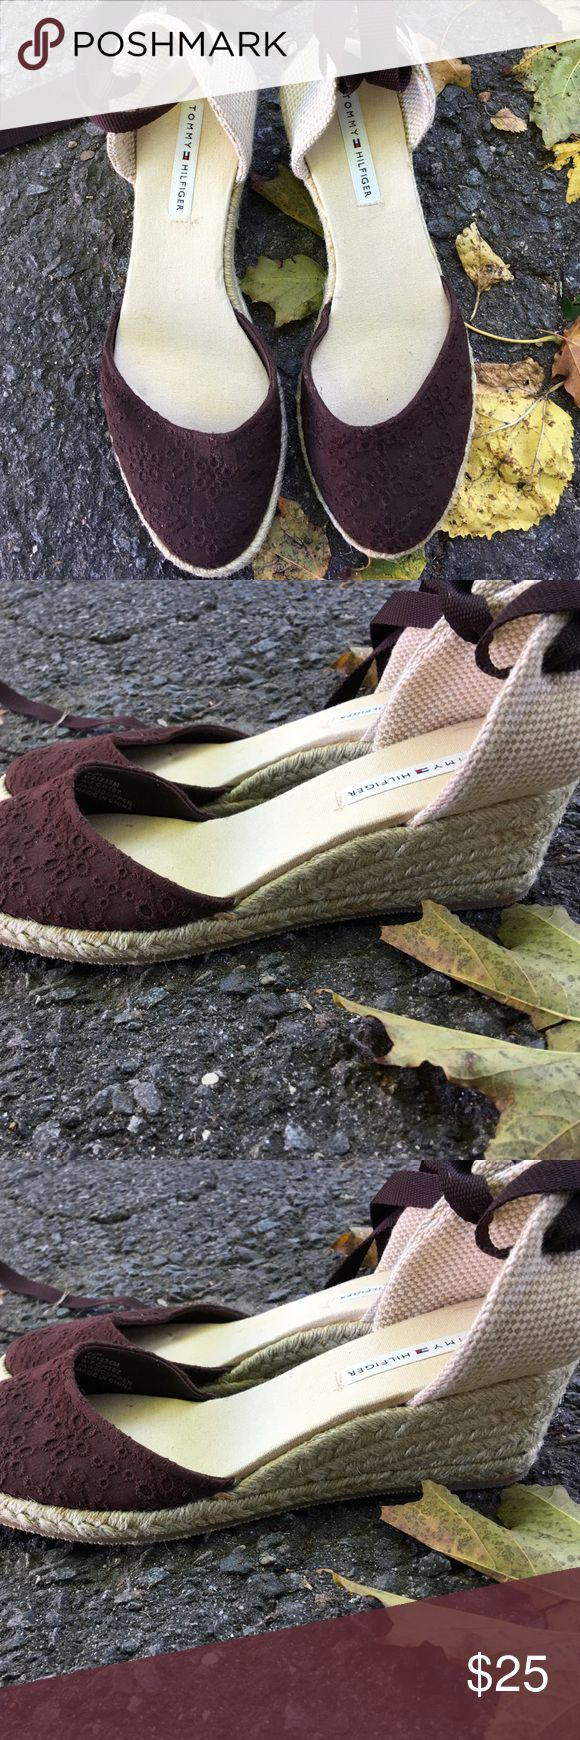 Women's Tommy Hilfiger Espadrilles Wedge heels. New without tags. List price or best offer. Tommy Hilfiger Shoes Espadrilles